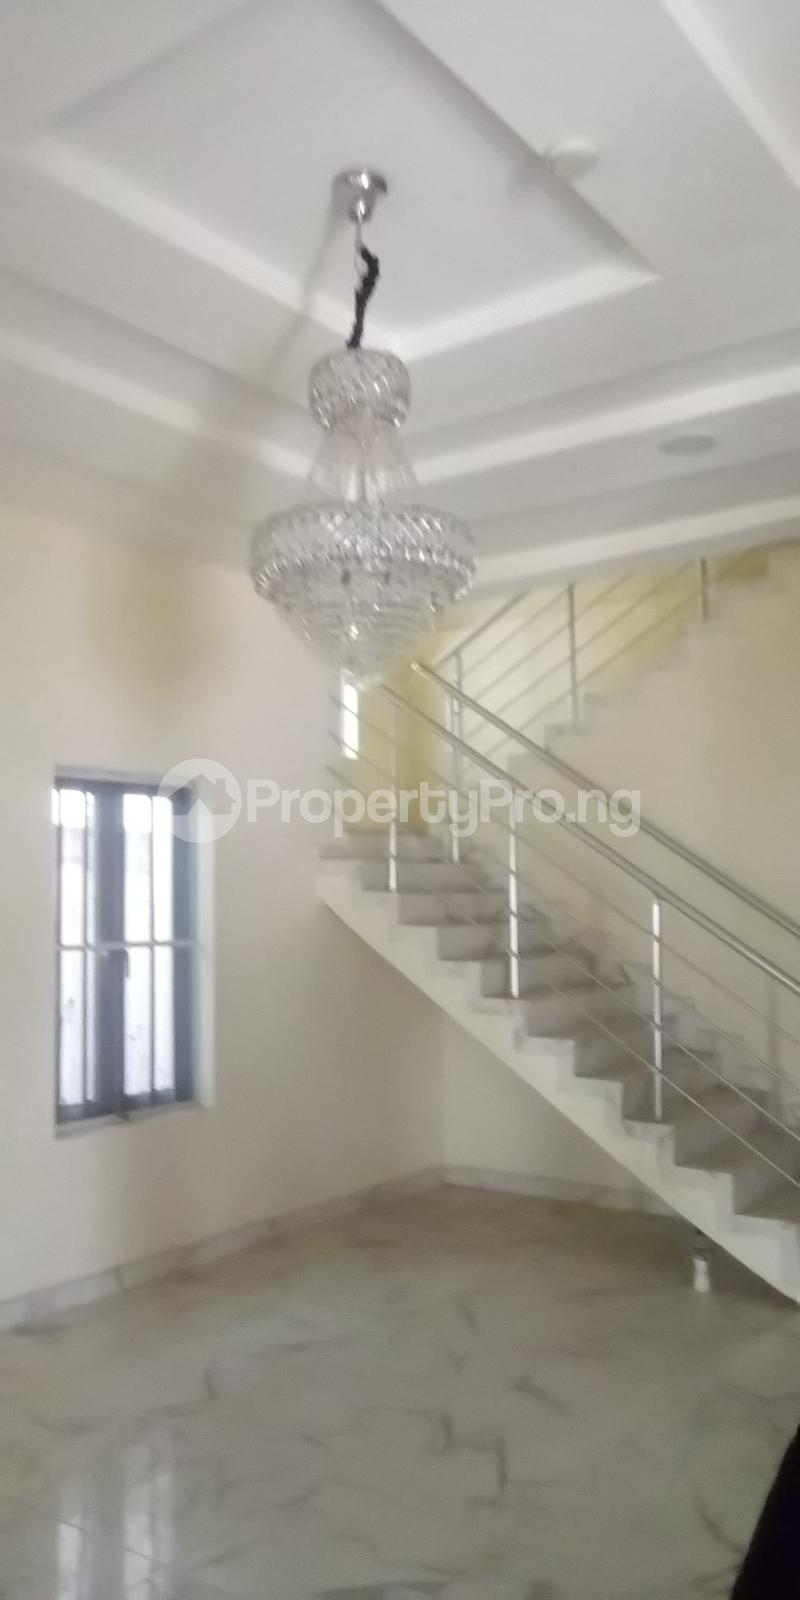 5 bedroom Detached Duplex House for rent 5 bedroom detached house on amjor commercial axis of Chevy View estate by Chevron,lekki. chevron Lekki Lagos - 2